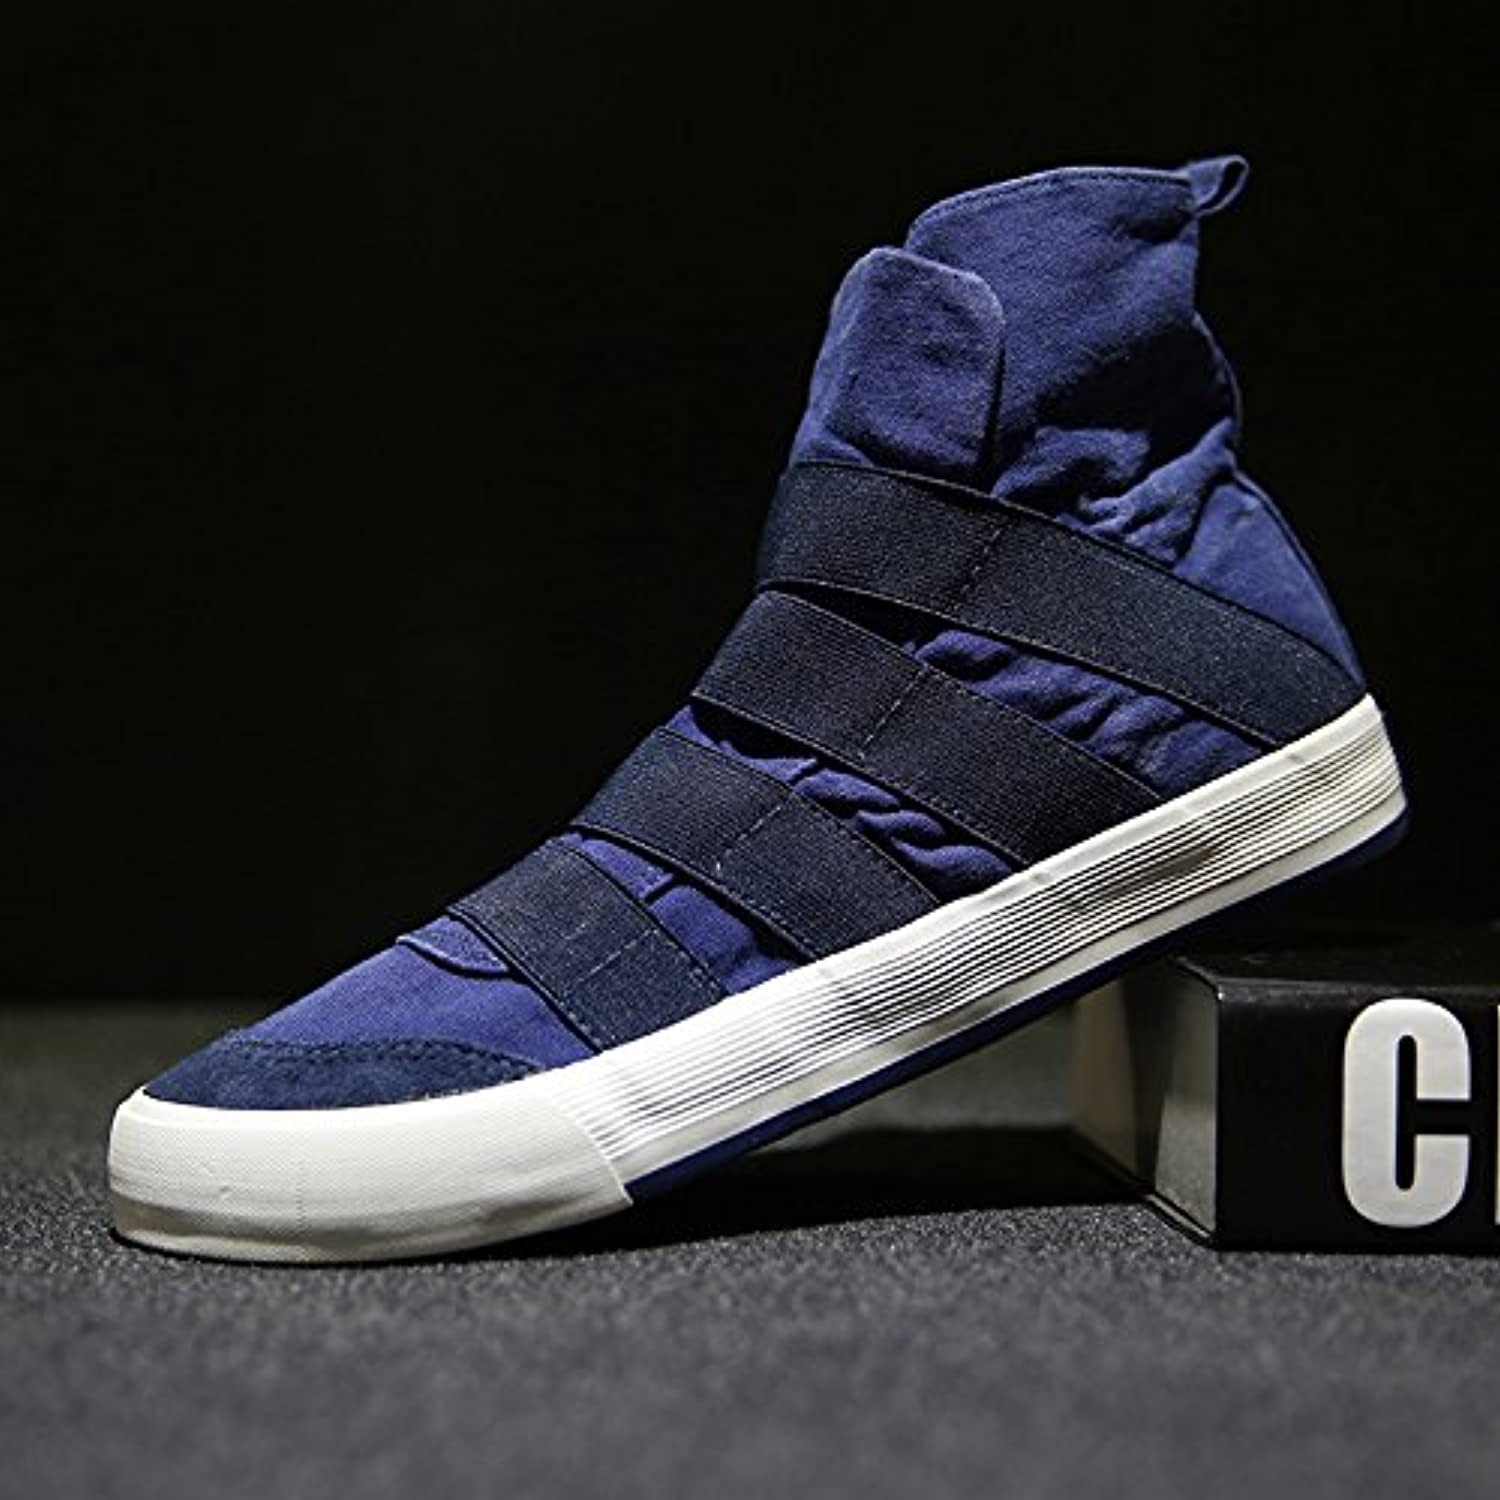 Fashion casual shoes are high canvas shoes to help young people all-match comfortable leisure canvas shoes,bluee,Forty